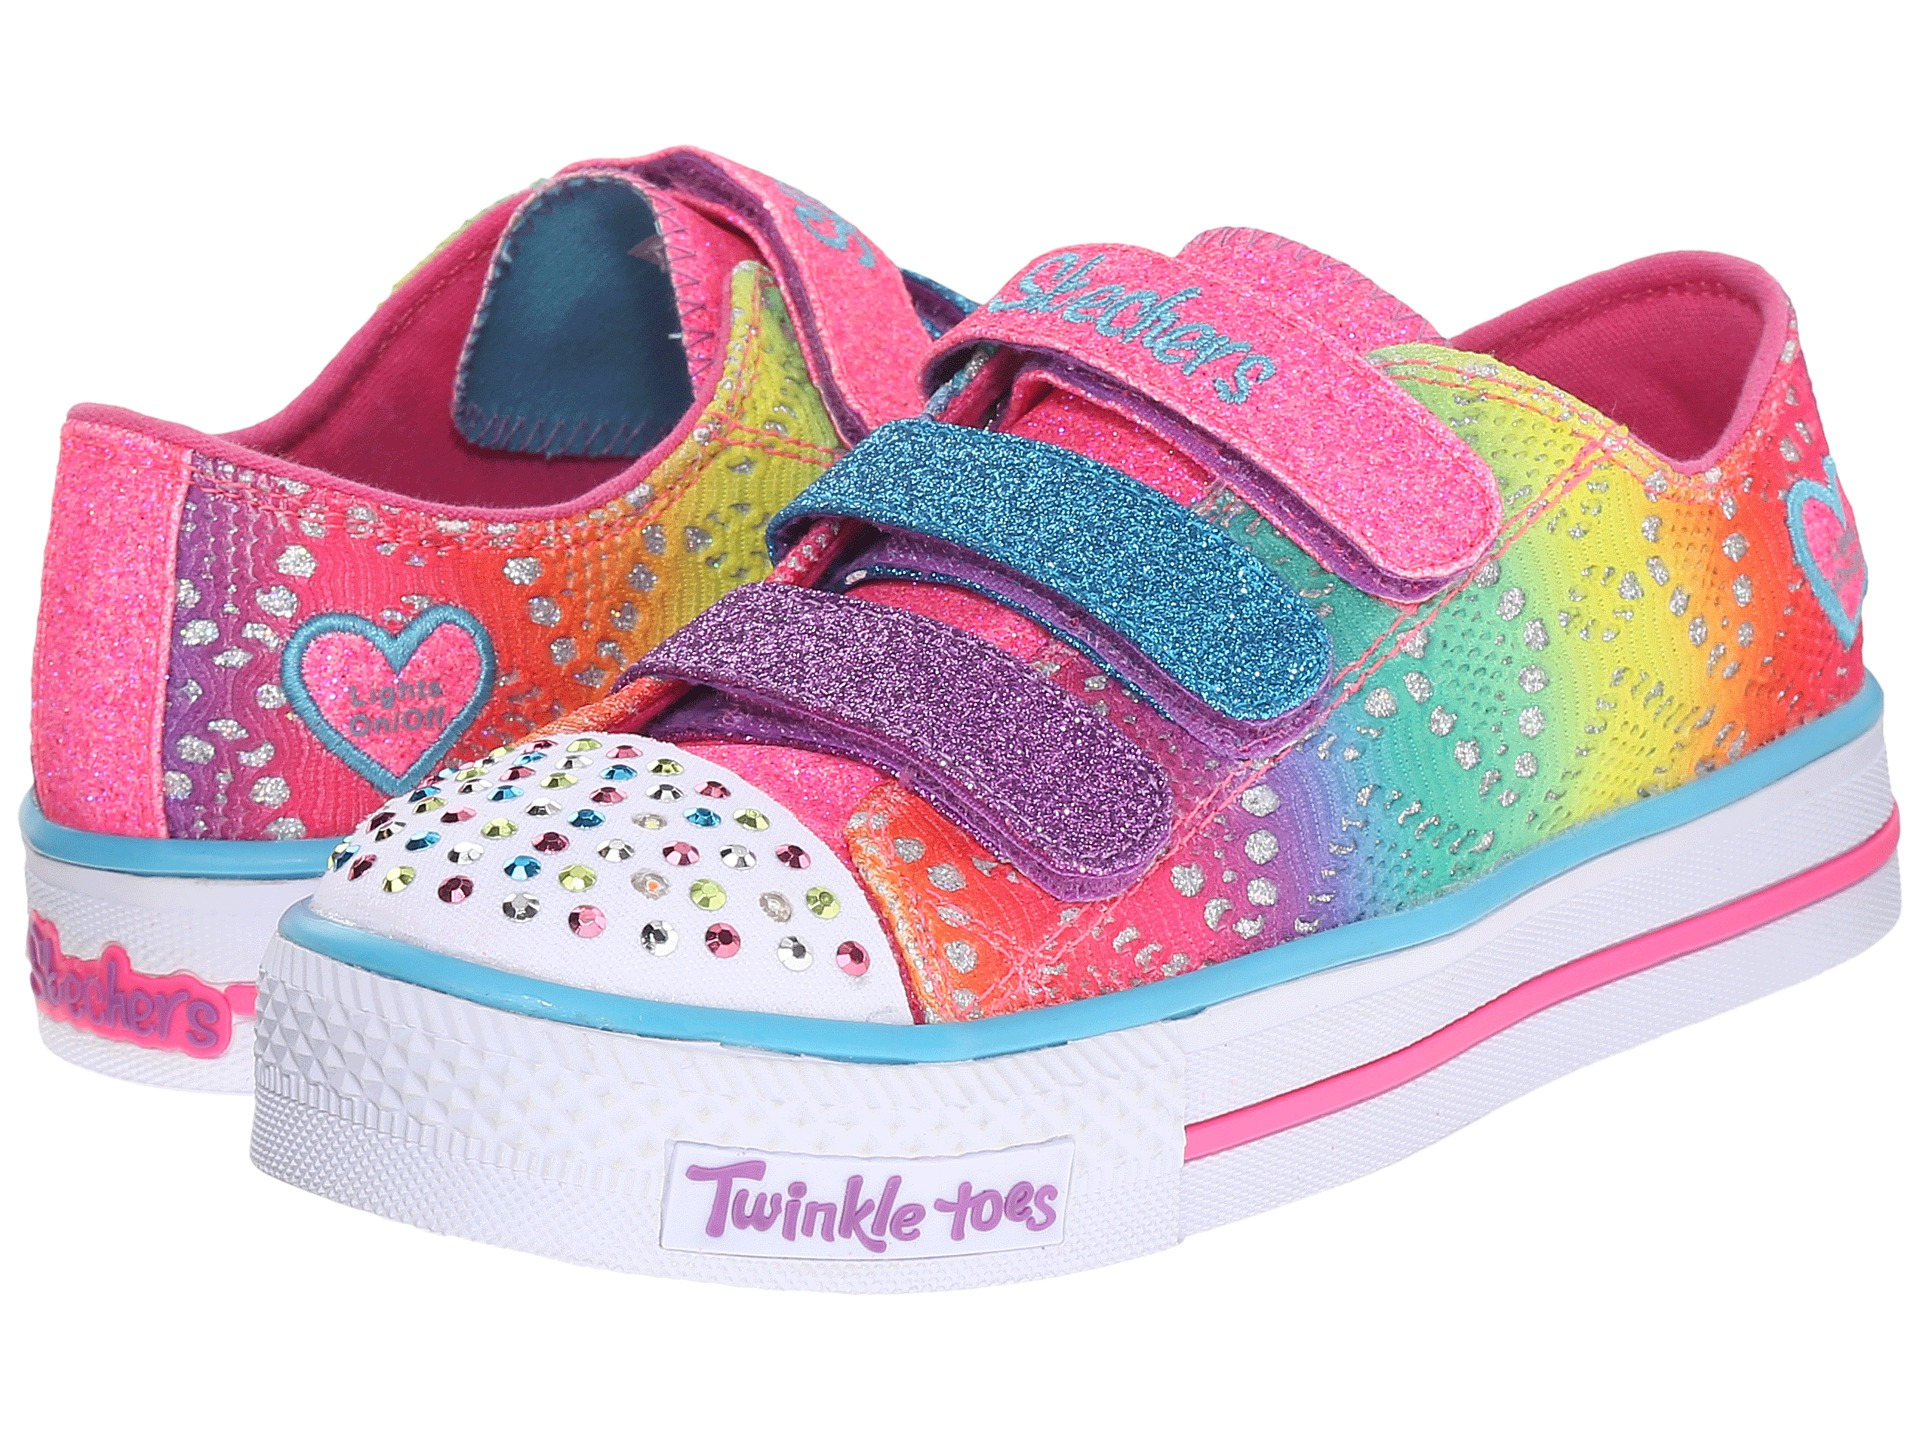 Twinkle Toes Shoes Size